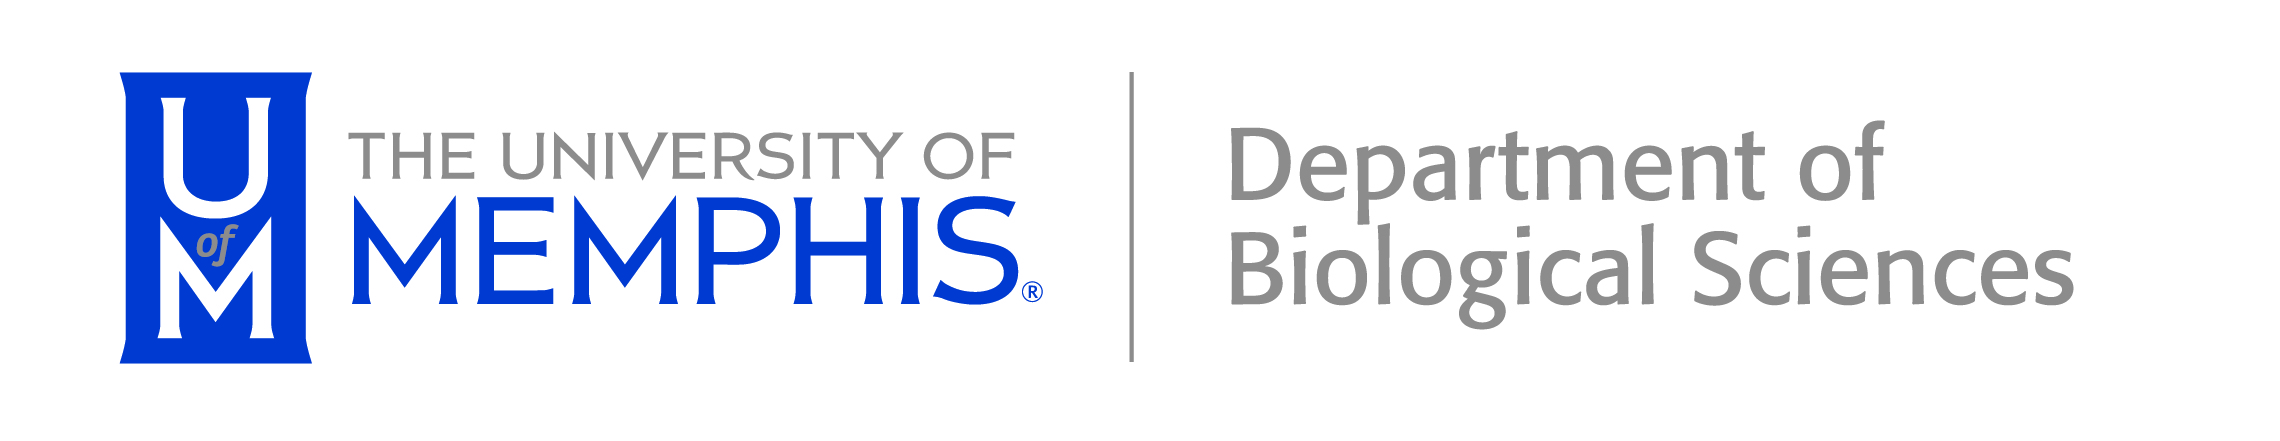 Department of Biological Sciences